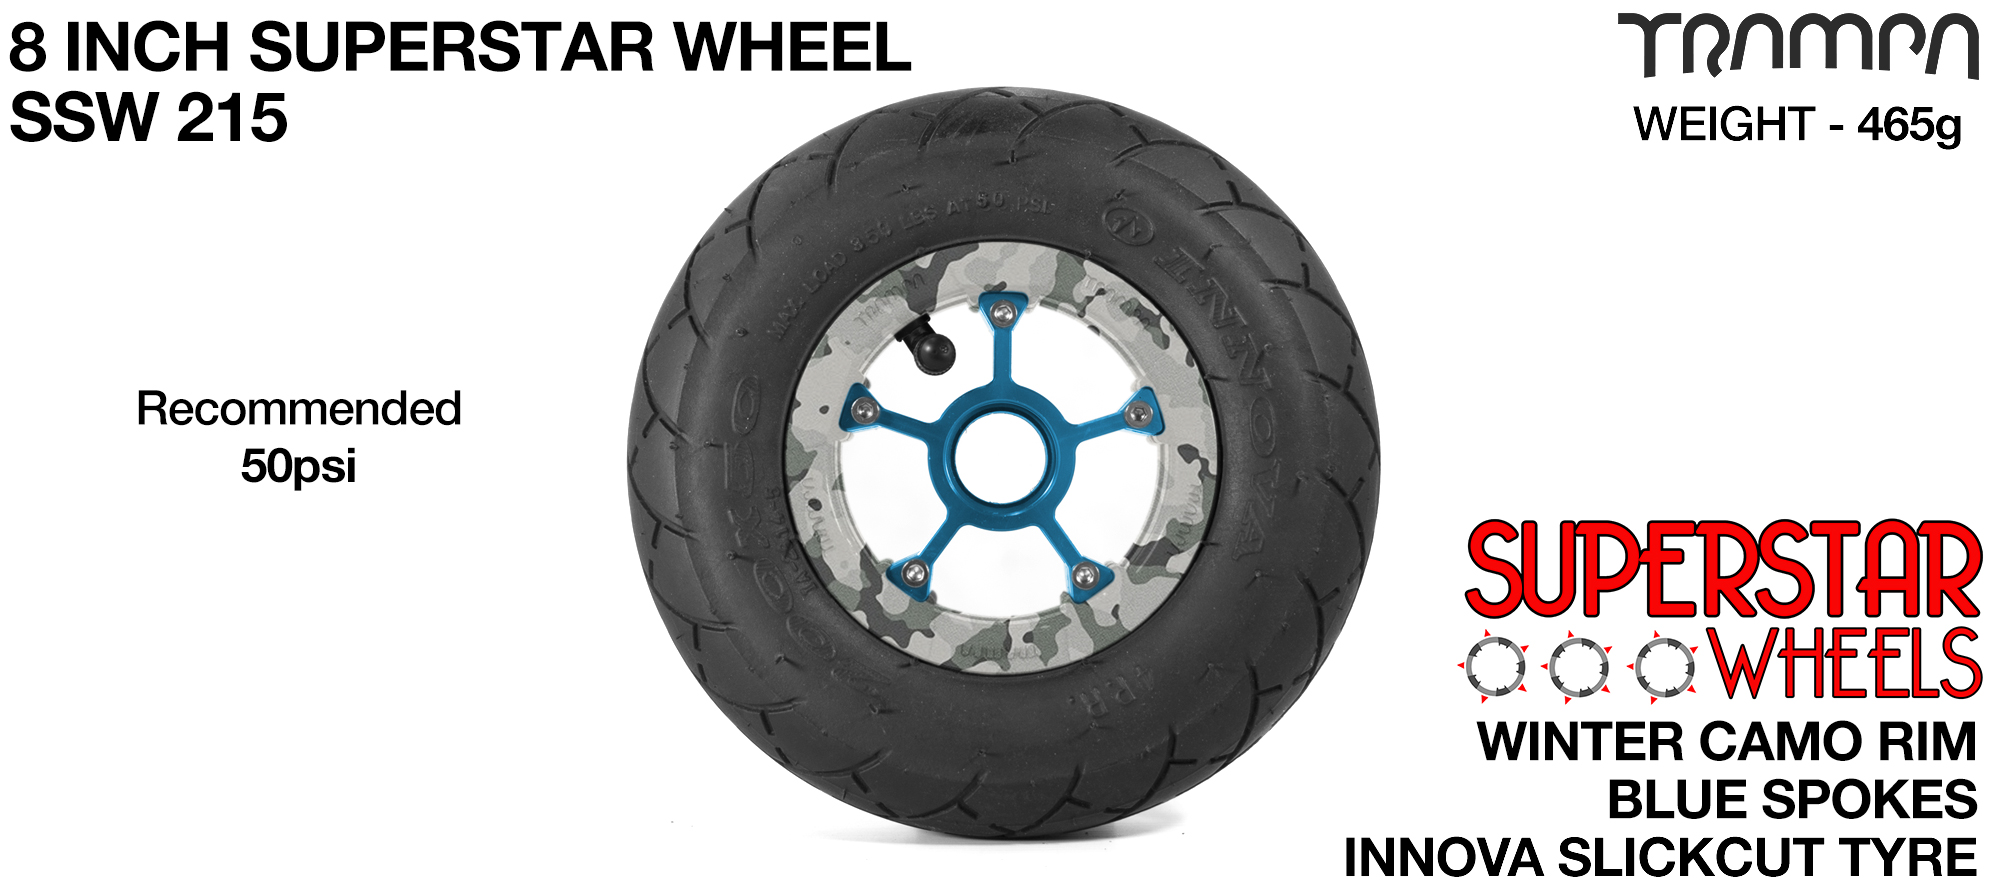 Superstar 8 inch wheels - Winter Camo Superstar Rim with Blue Anodised spokes & Black SLICKCUT 8 inch Tyre